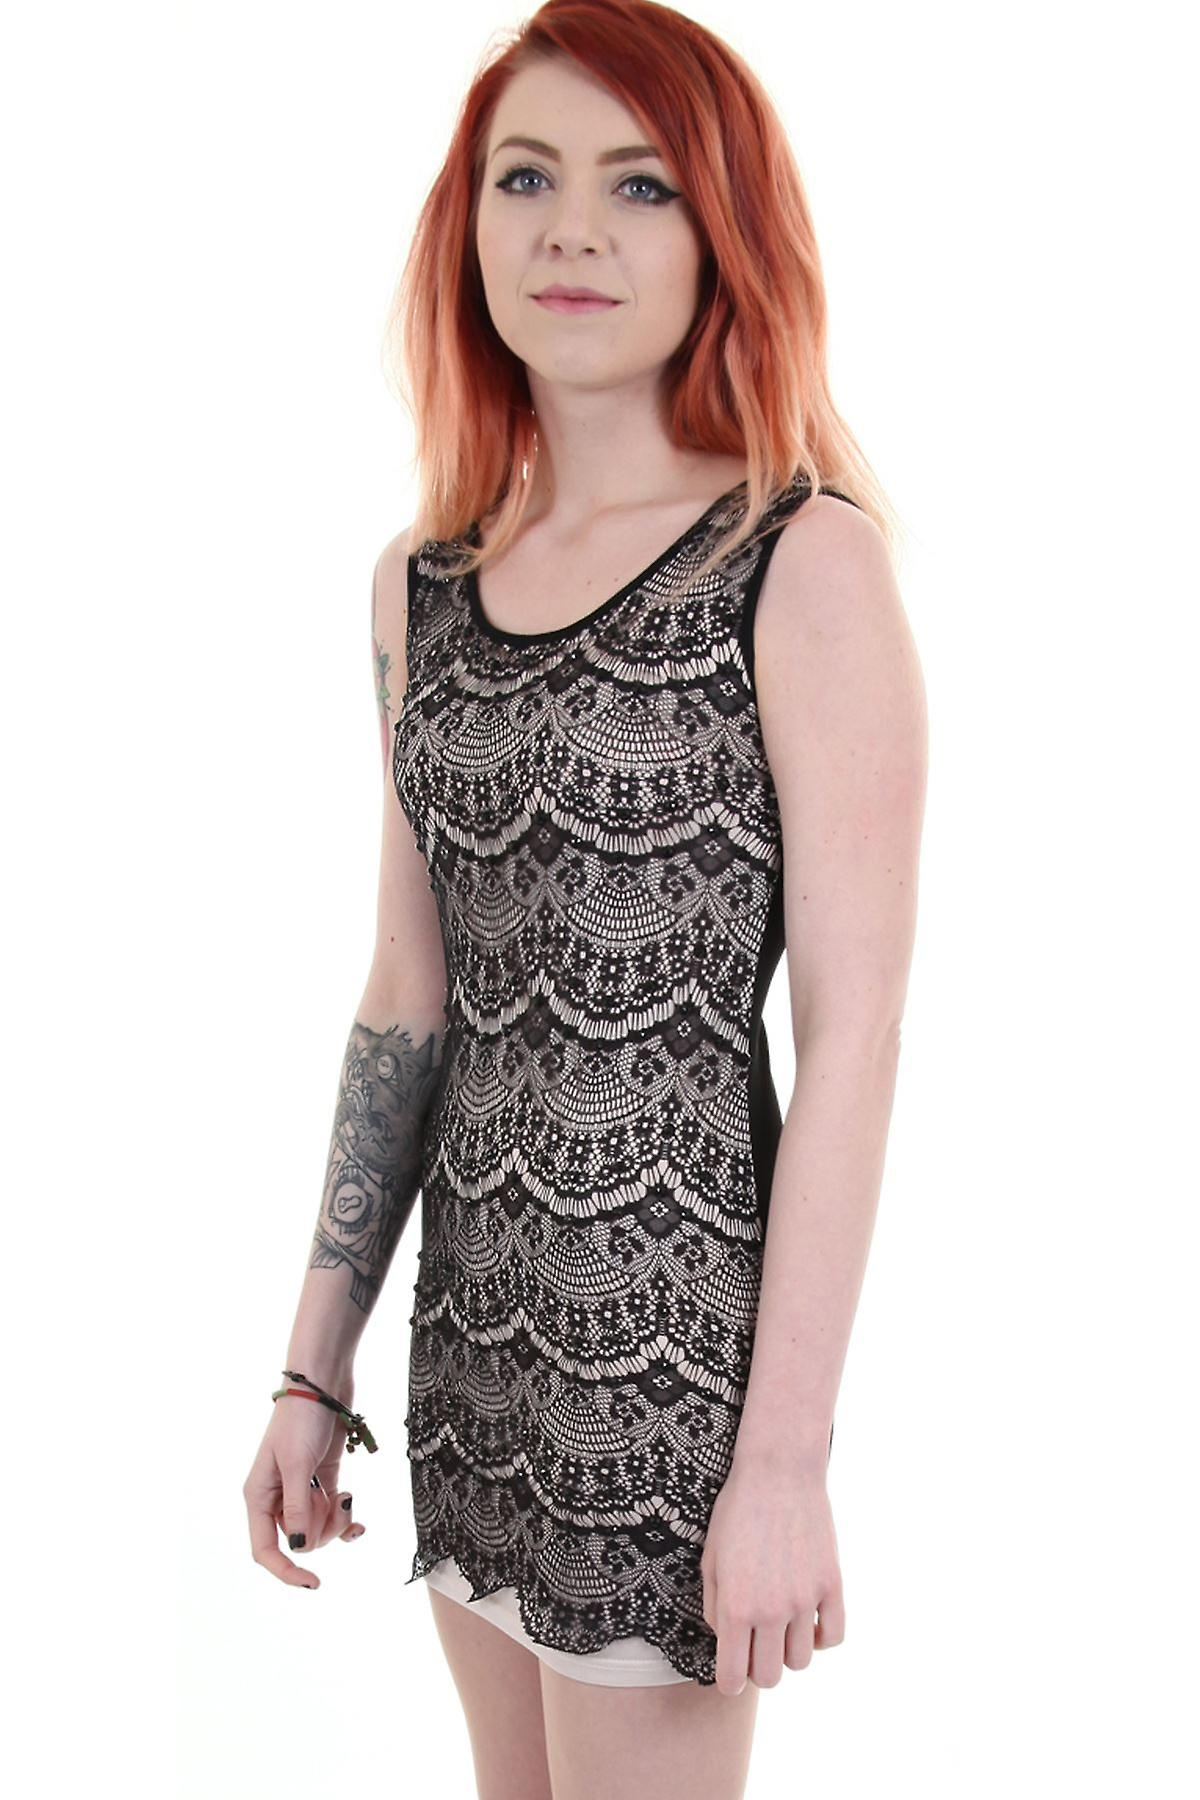 Ladies Black Beaded Diamante Lace Front Nude Lining Party Evening Women's Top